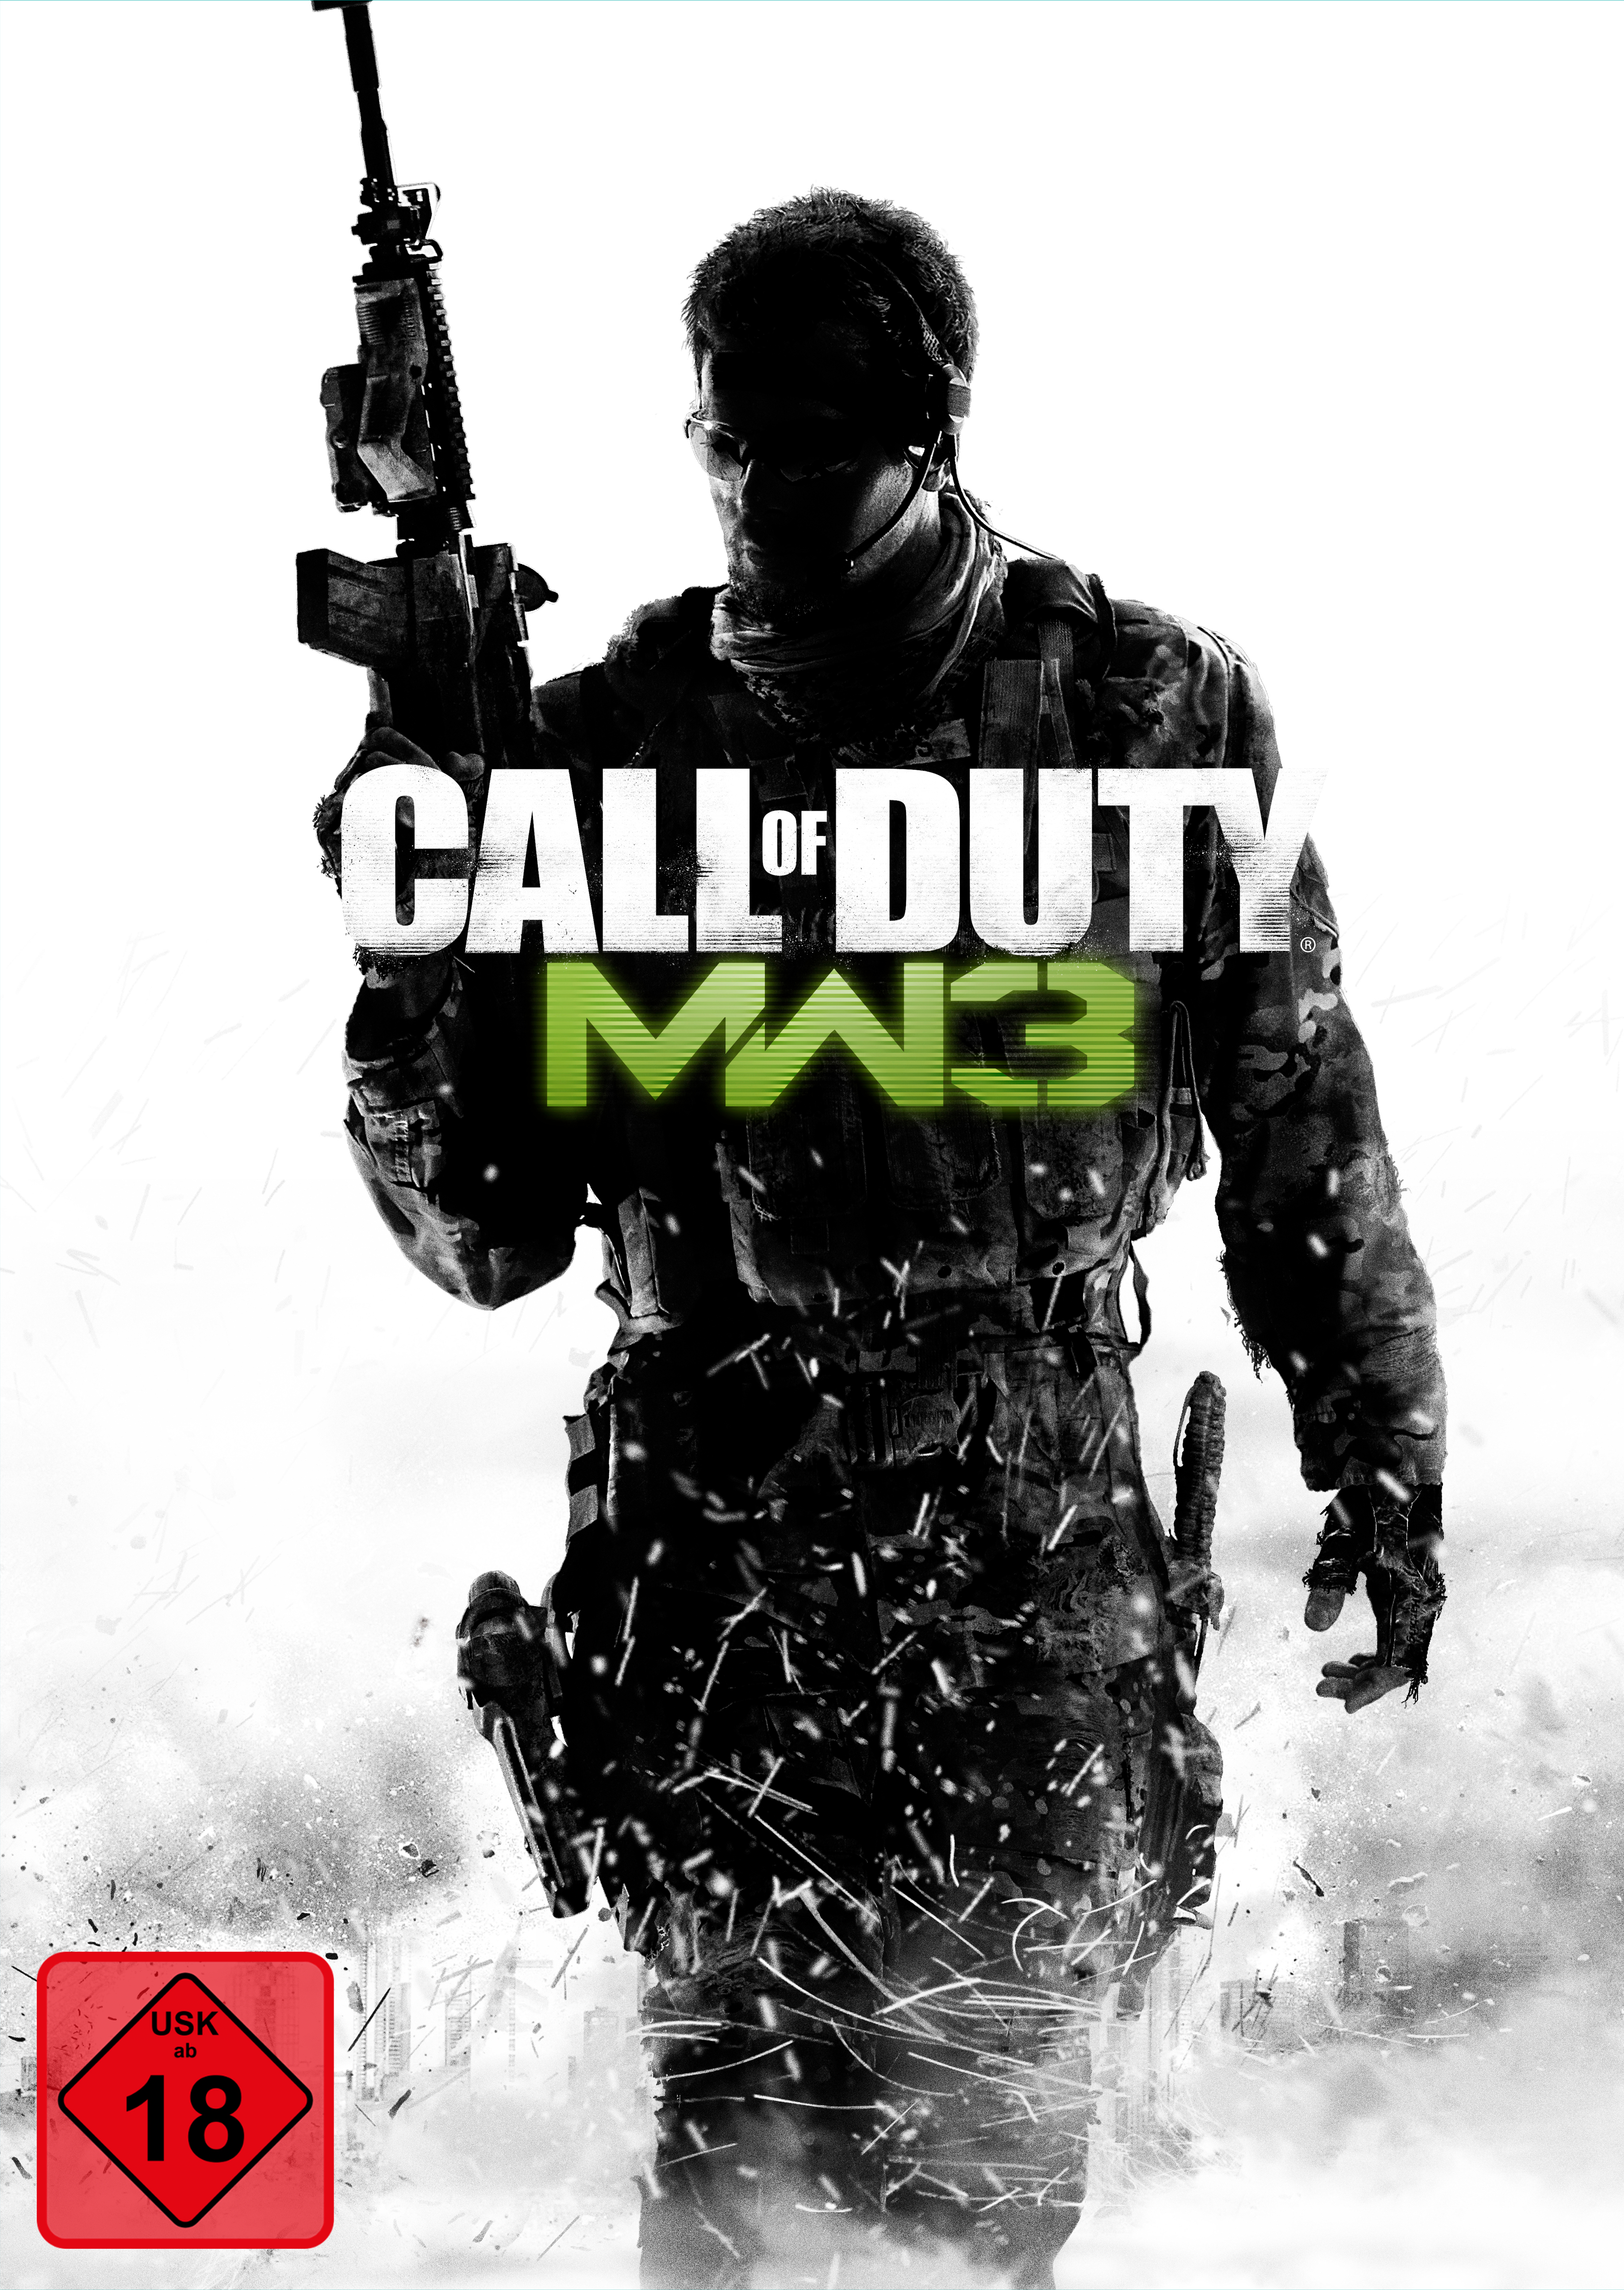 Preisvergleich Produktbild Call of Duty: Modern Warfare 3 [PC Code - Steam]